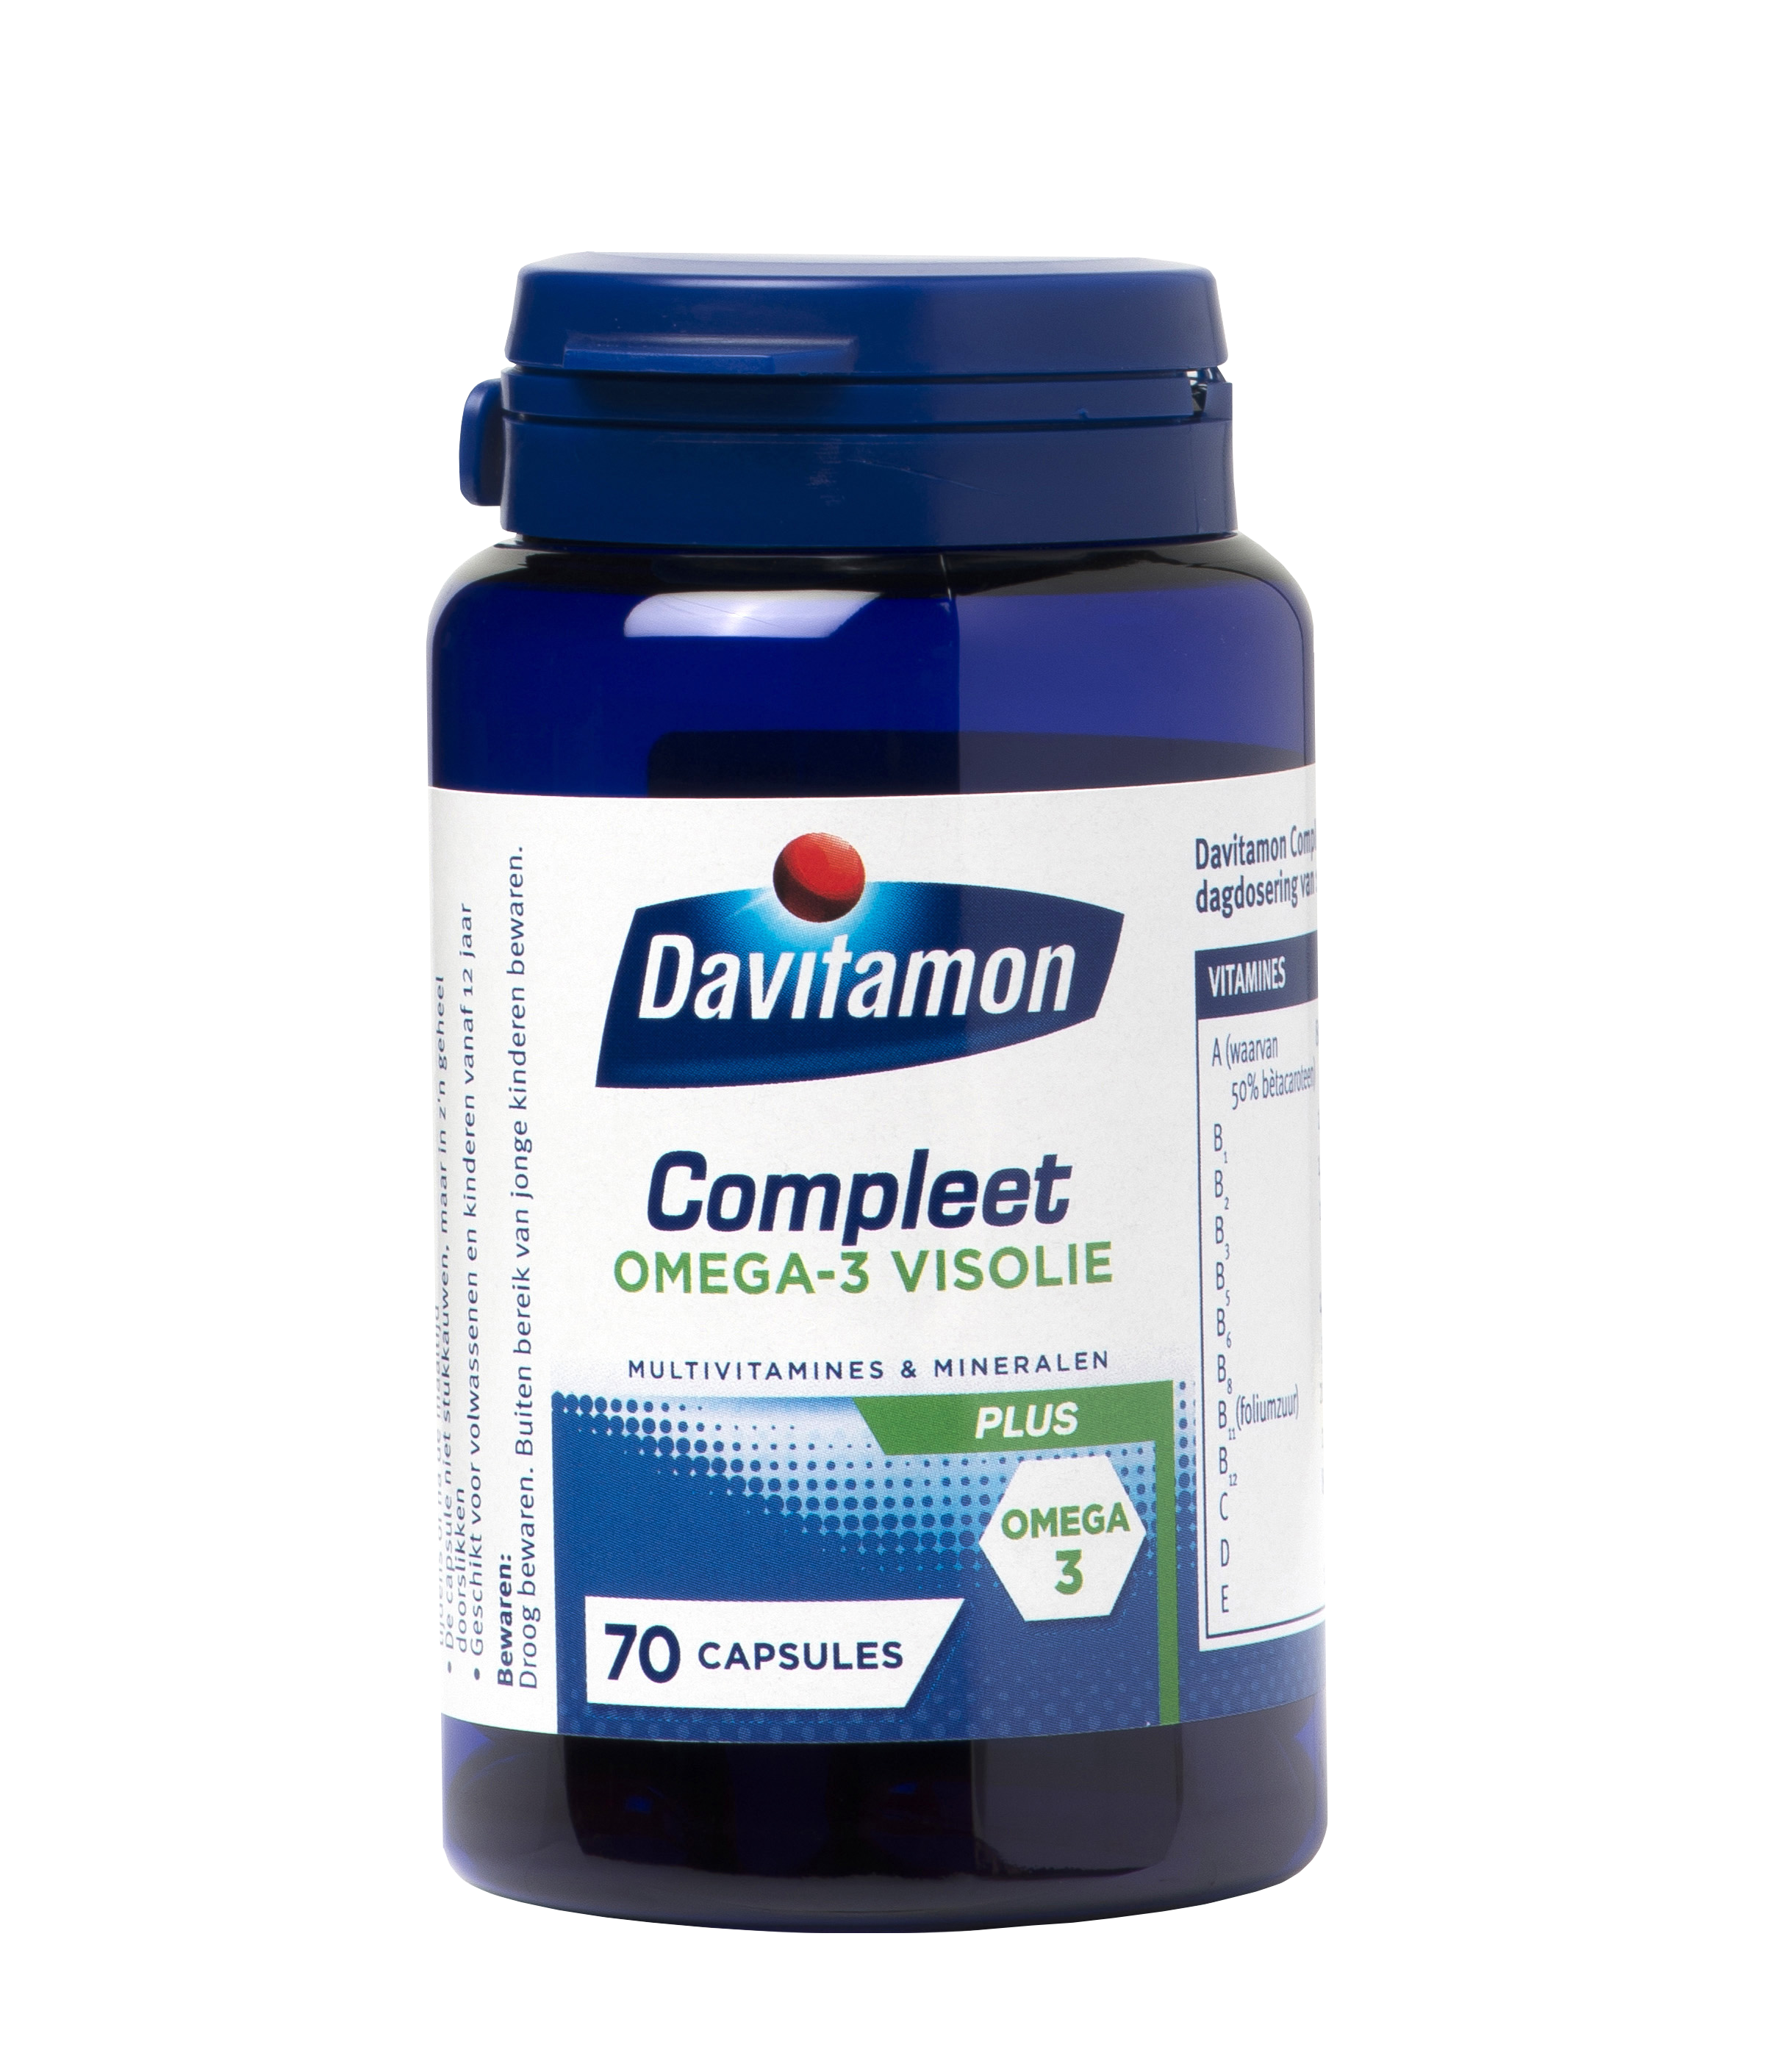 Davitamon Compleet Omega 3 Capsules product